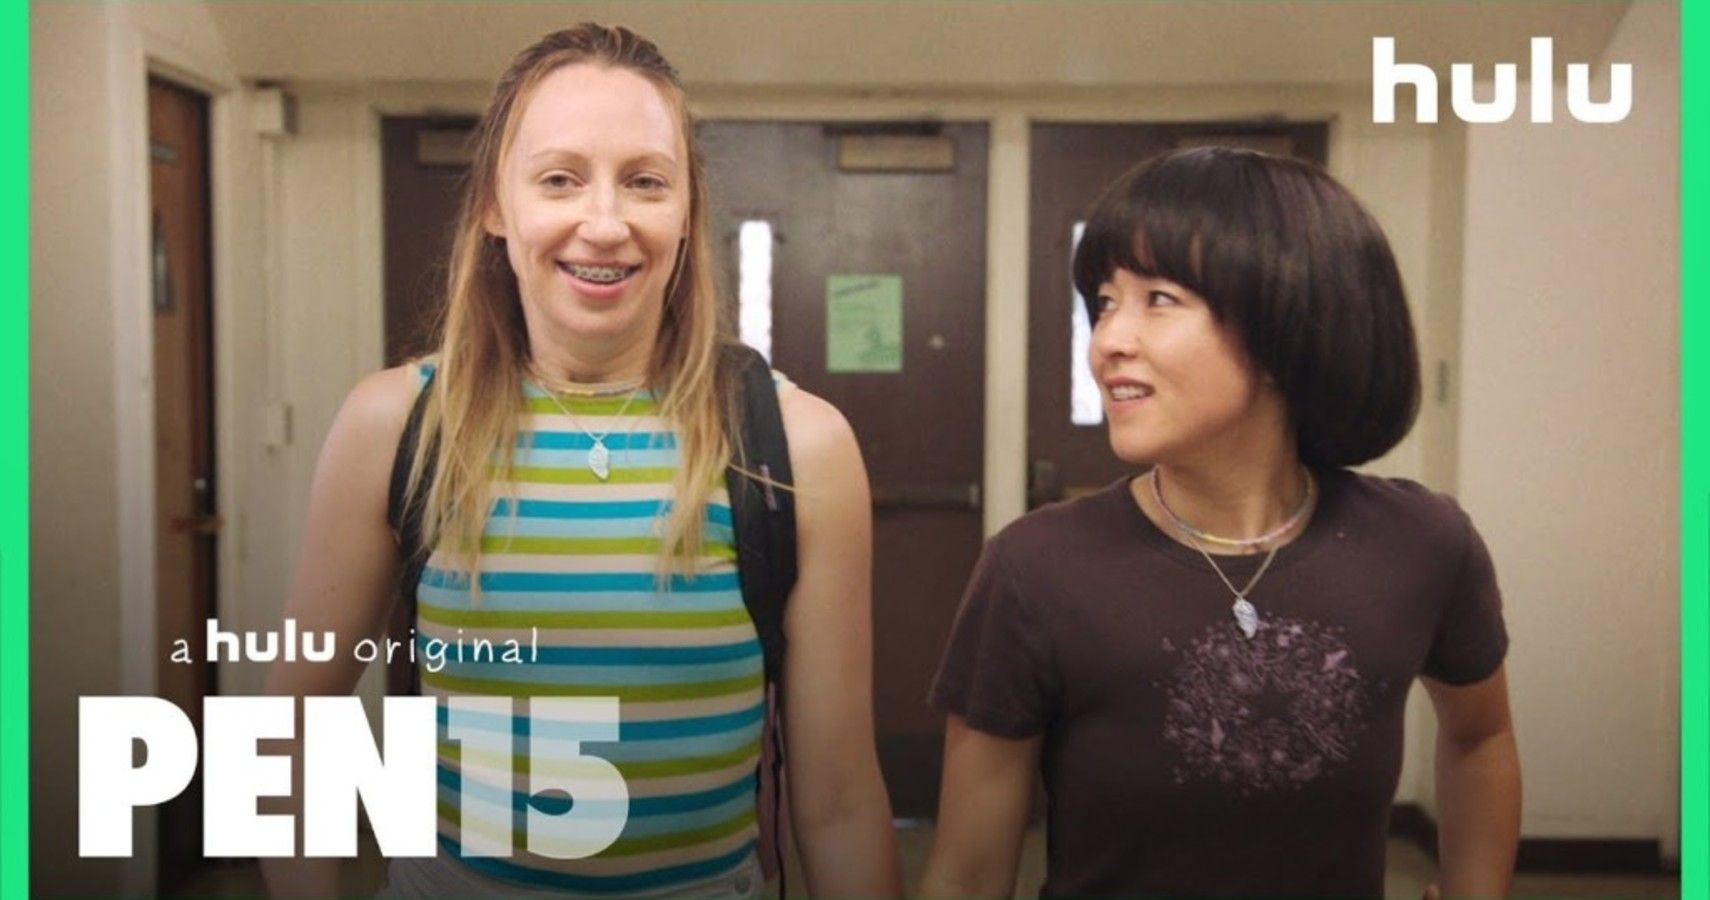 Pen15 Makes A Splash Among LGBTQ Community For Authentic Portrayal Of Gay Teen Experience